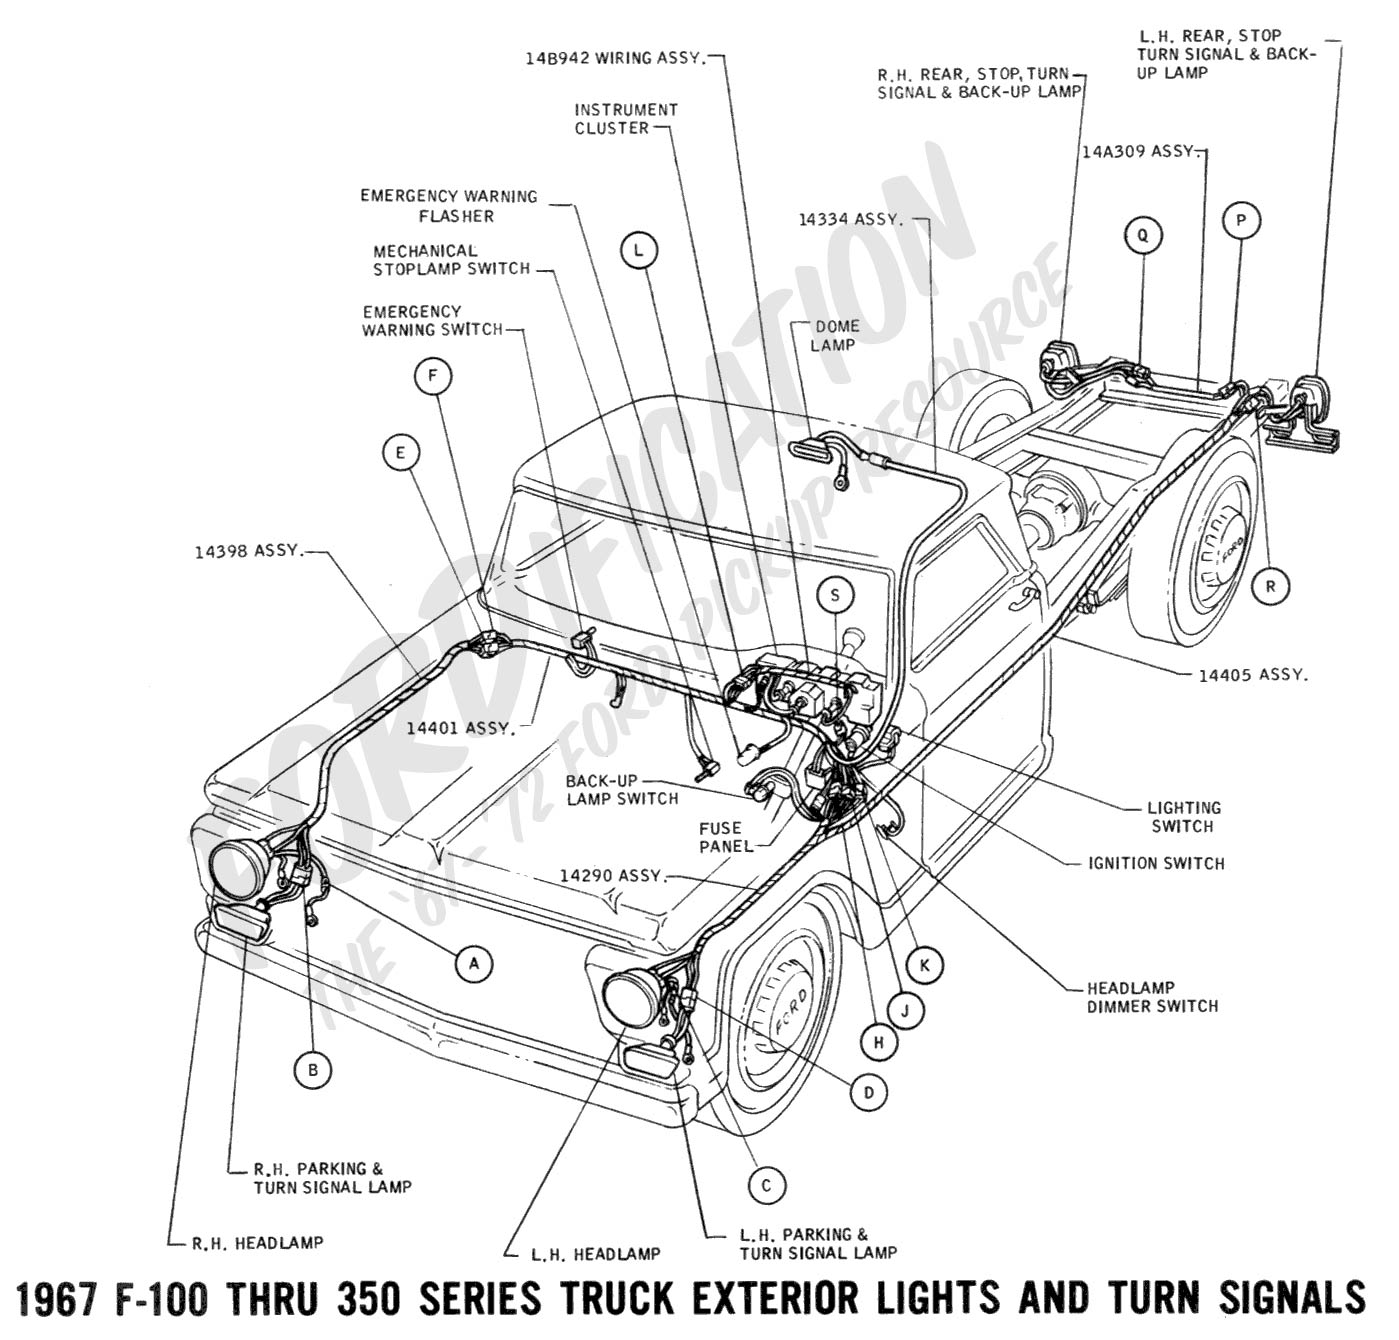 1990 ford ranger fuel line diagram bookmark about wiring diagram 1986 Ford Ranger Wiring Diagram